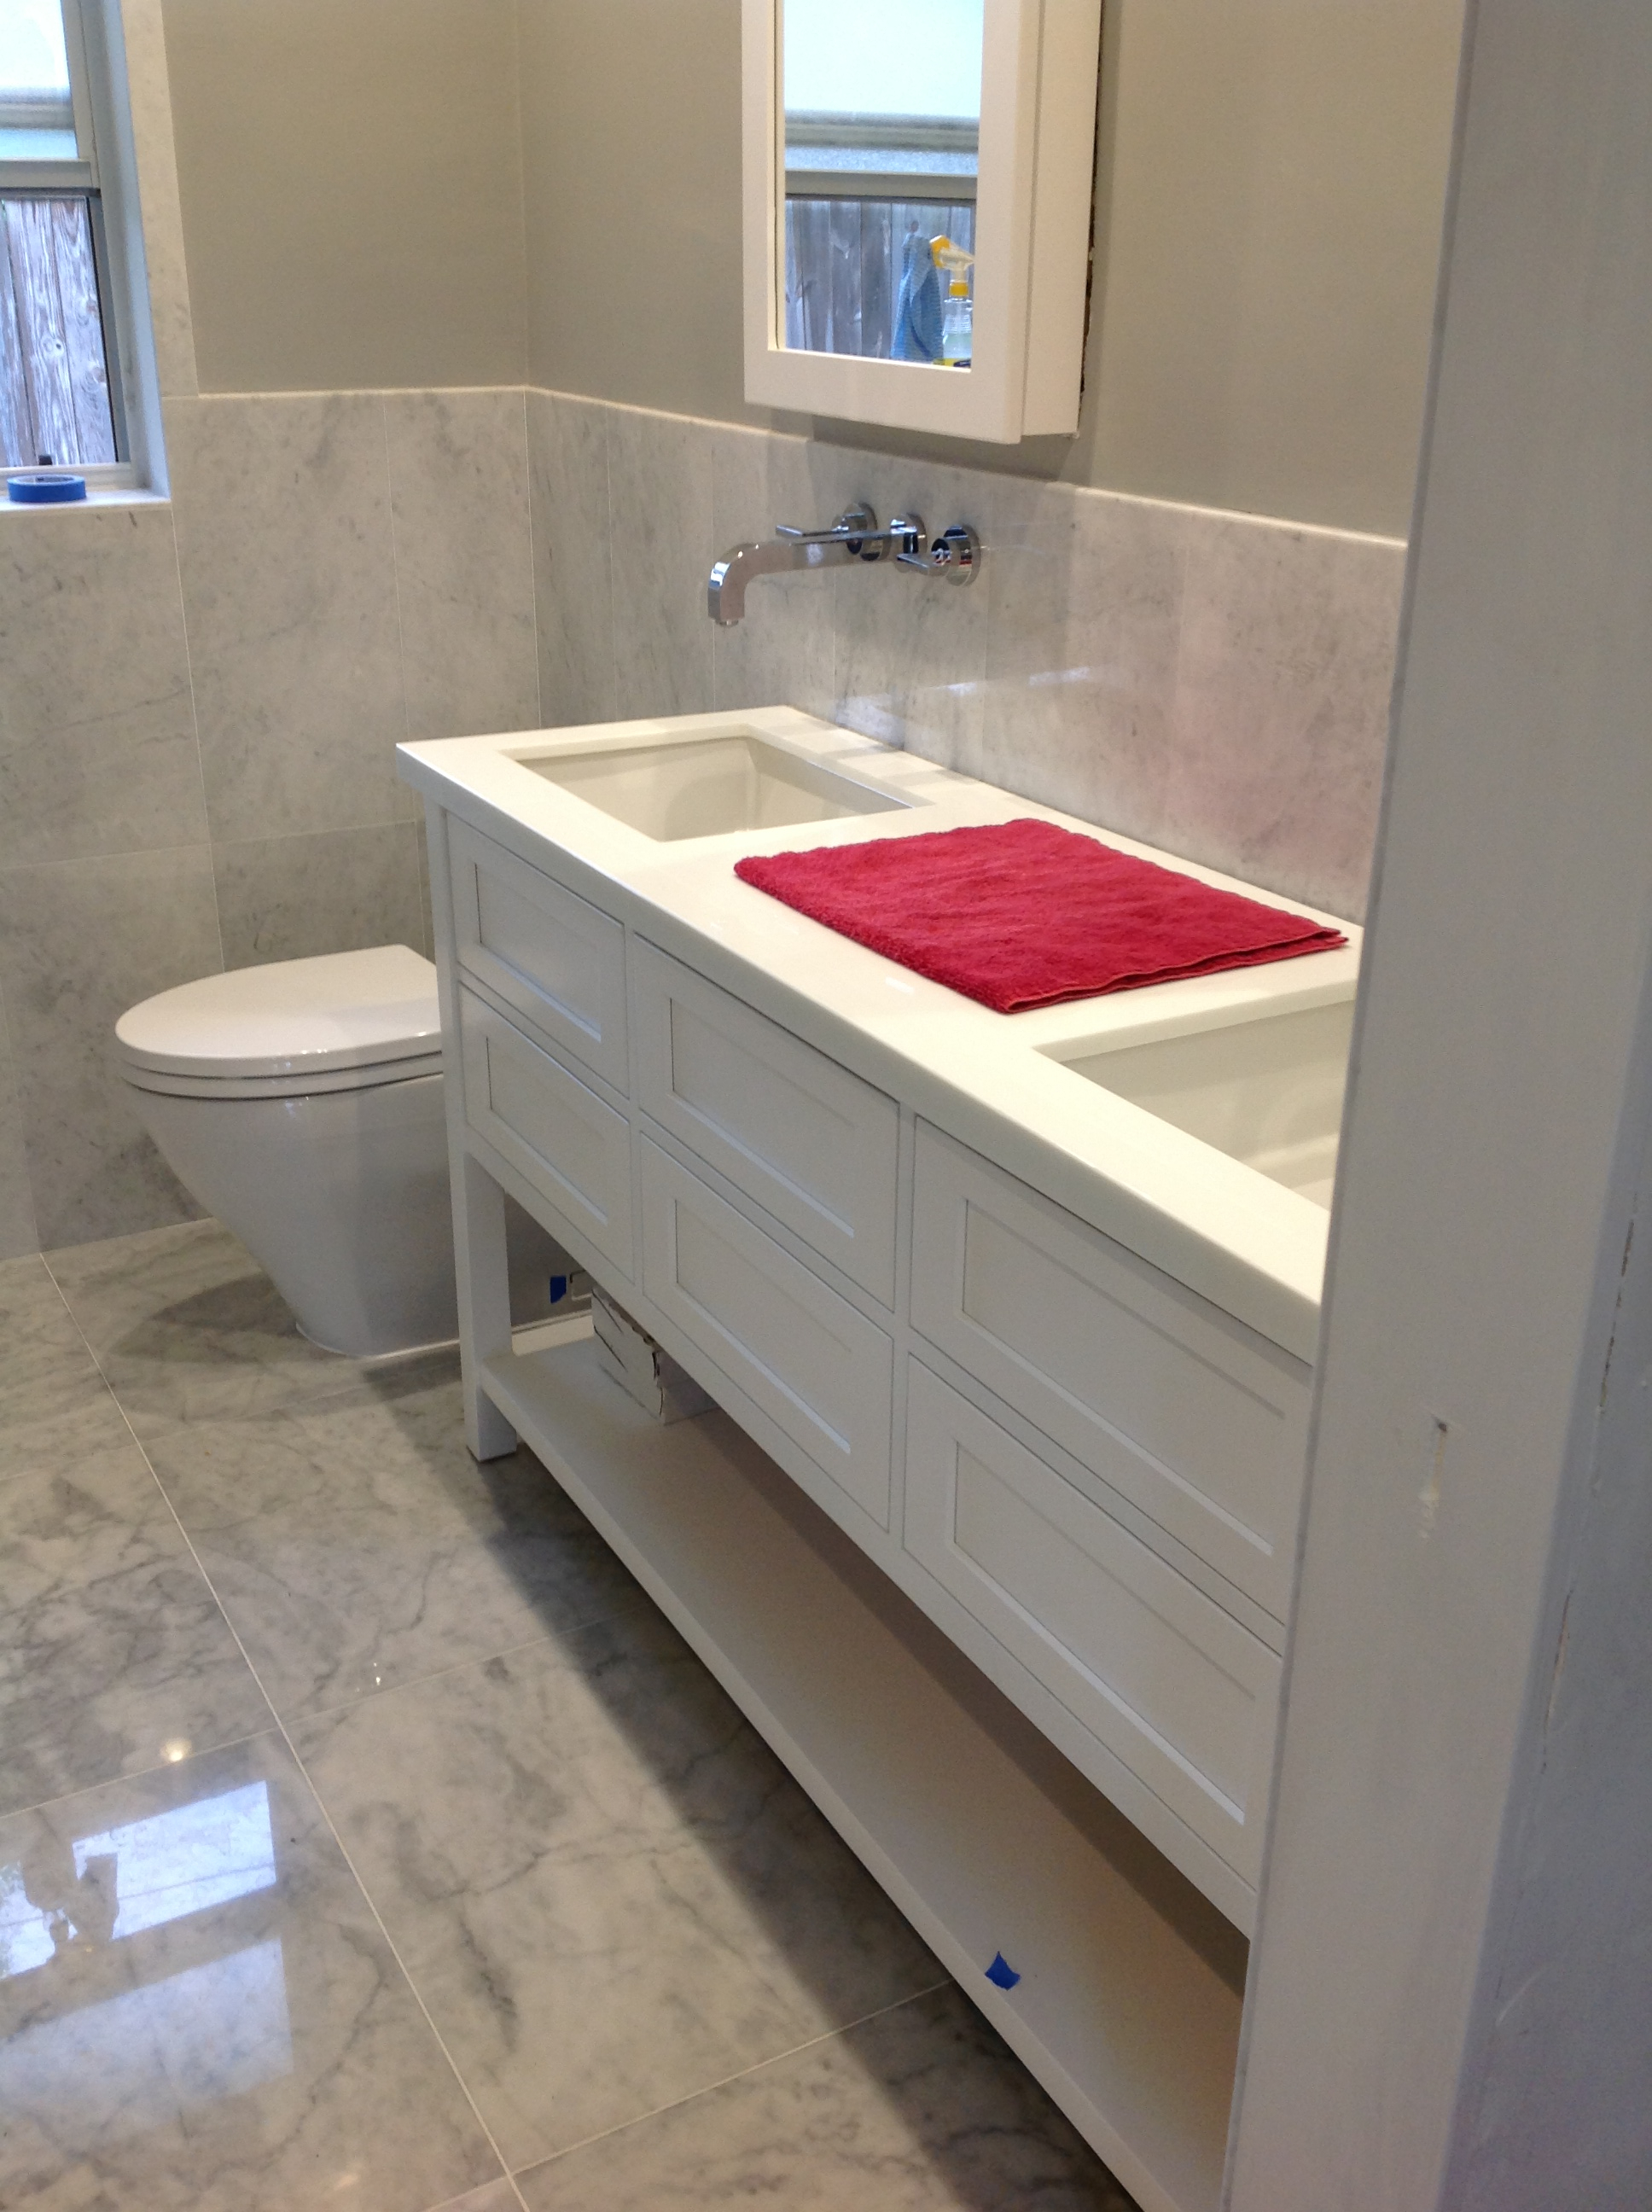 Inspirational Custom Bathroom Cabinets Miami Coral Gables Vanity Hutch Inch Tops intended for New Custom Bathroom Cabinets